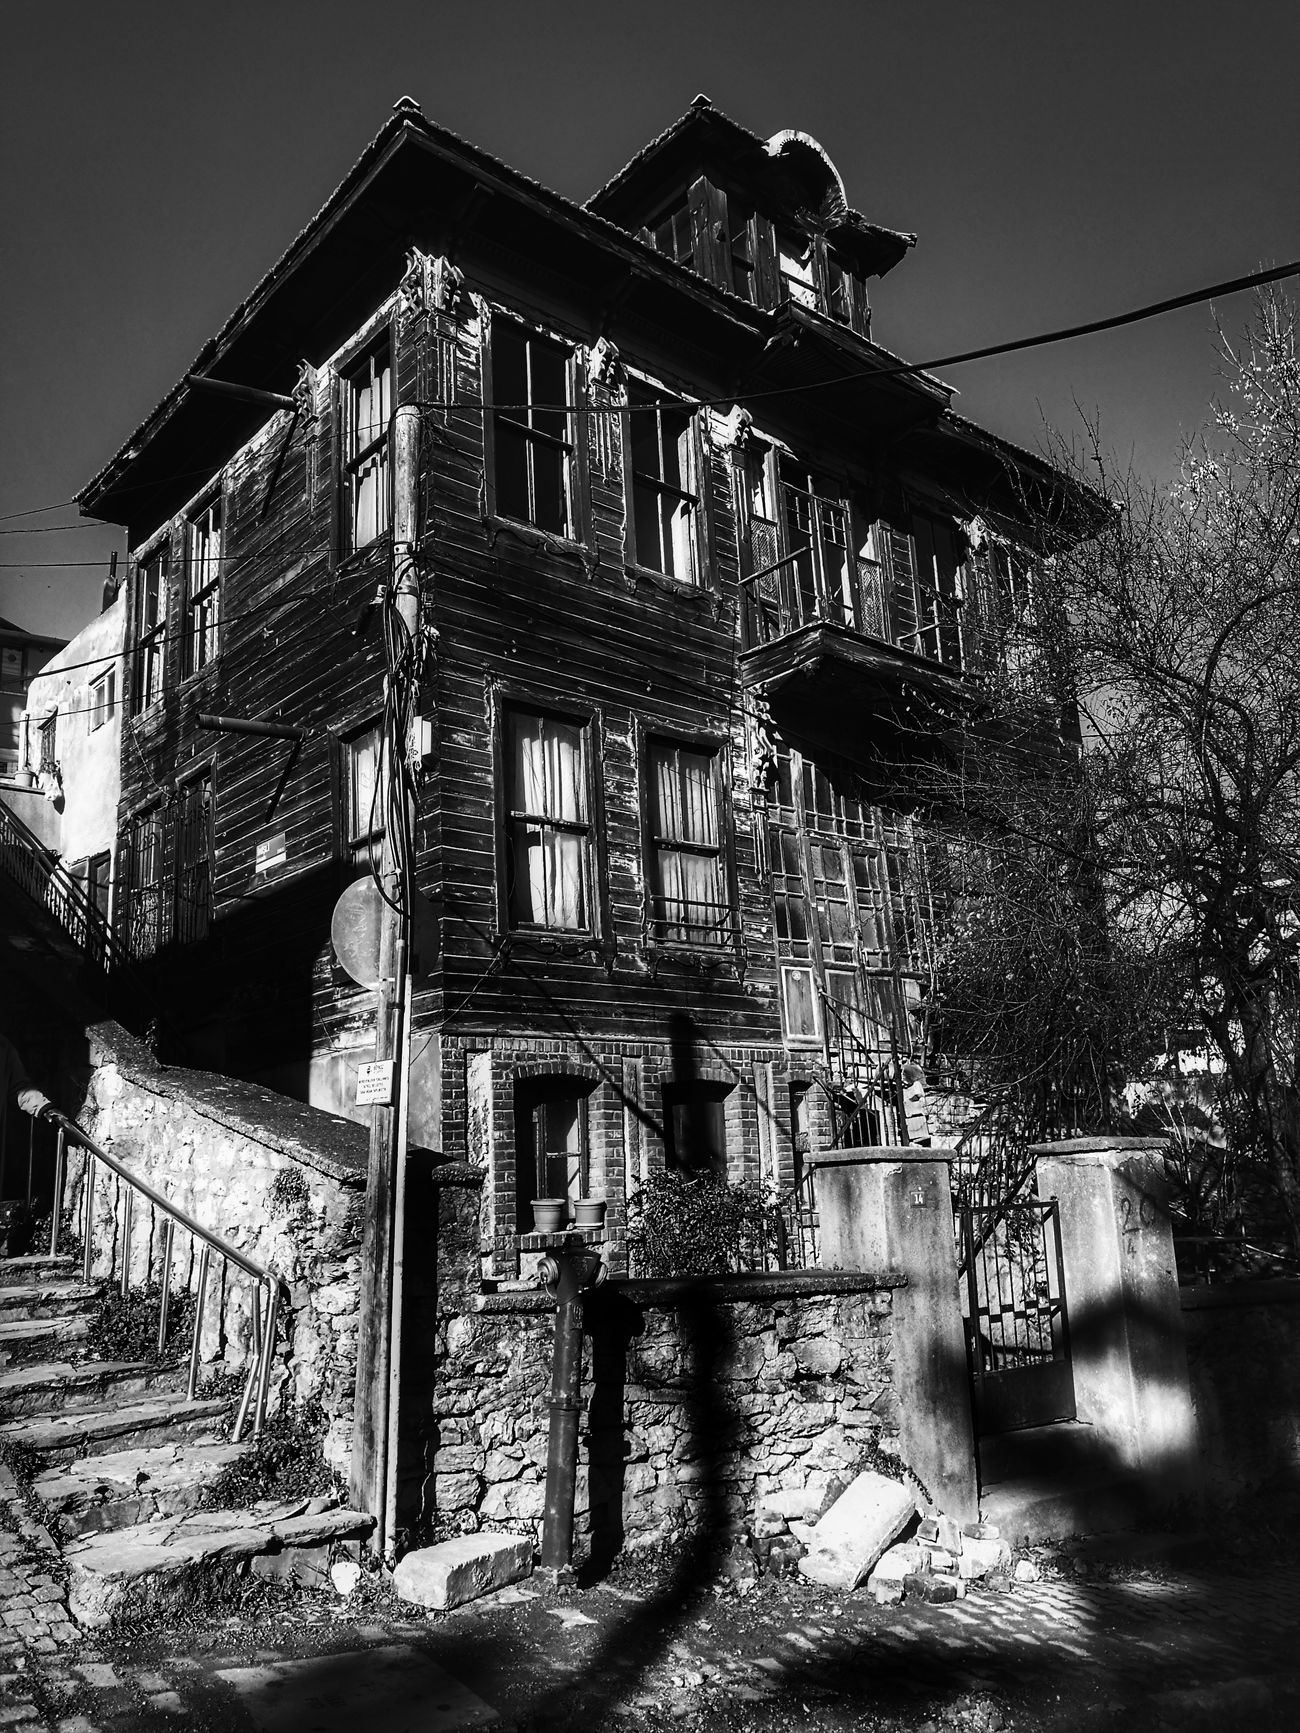 Railing Built Structure Architecture Sky Prison No People Day Outdoors Black And White Photography Black Background Istanbul Turkey Monocrome Monochrome Photography Beykoz, Turkey, Turkish, Istanbul, Asia, Asian, Middle East, Black Sea, River, Riva, Riva River, Water, Winter, Season